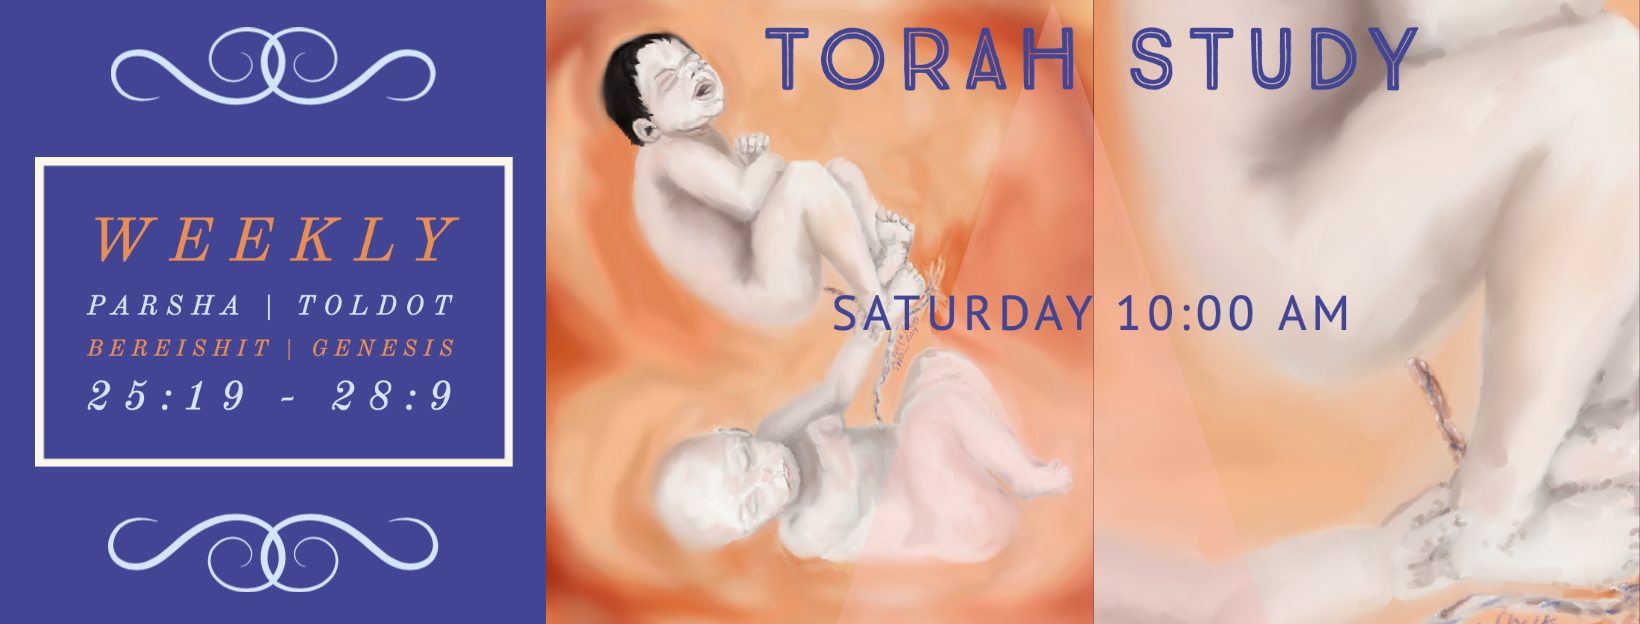 Torah Study with Reb Jamie and Friends! Saturday at 10:00 am